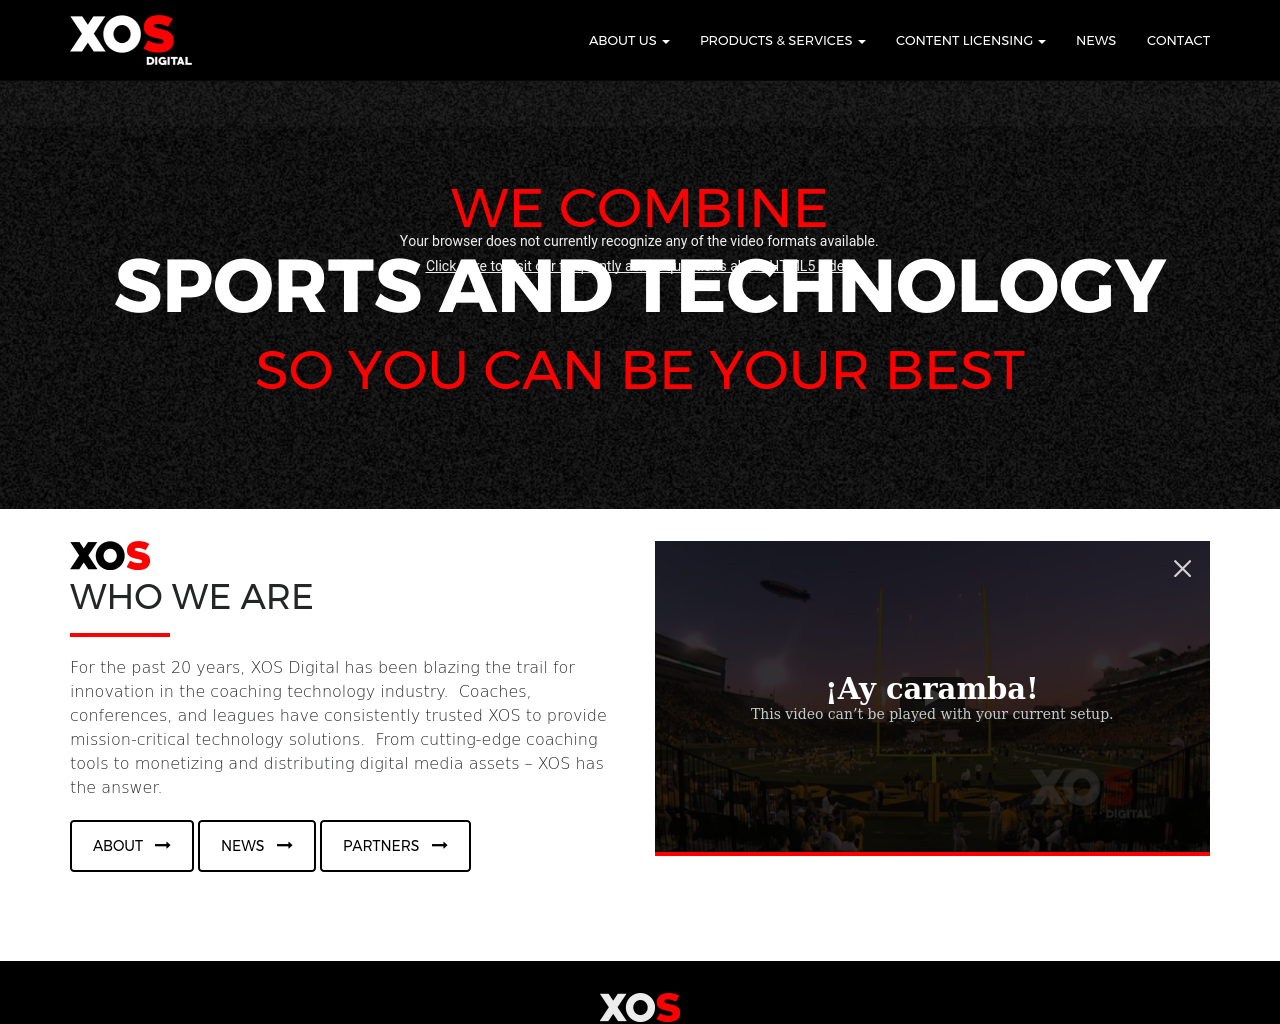 XOS-Digital-Advertising-Reviews-Pricing